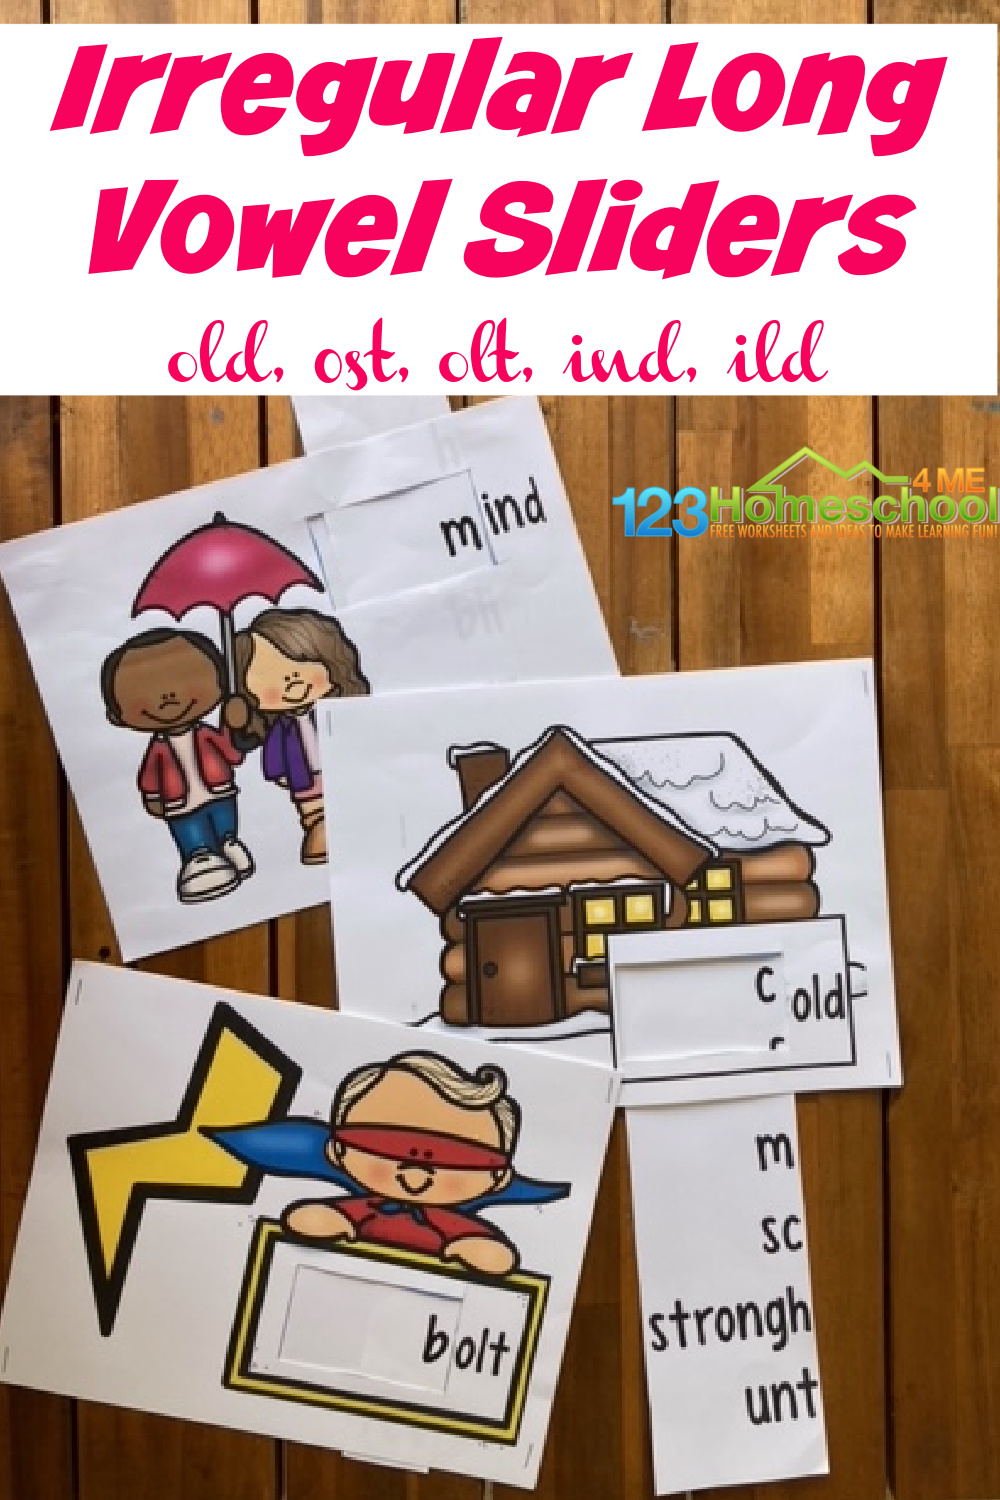 These super cute sliders are a fun, effecitve way for first grade and 2nd grade students to learnirregular vowels. Children will have fun with this cleverirregular verb activity and parents will love all theirregular verbs practice. Simply print pdf file withirregular verb game and you are ready to play and learn long o followed by ld, lt, and st as well as long o followed by nd and ld.